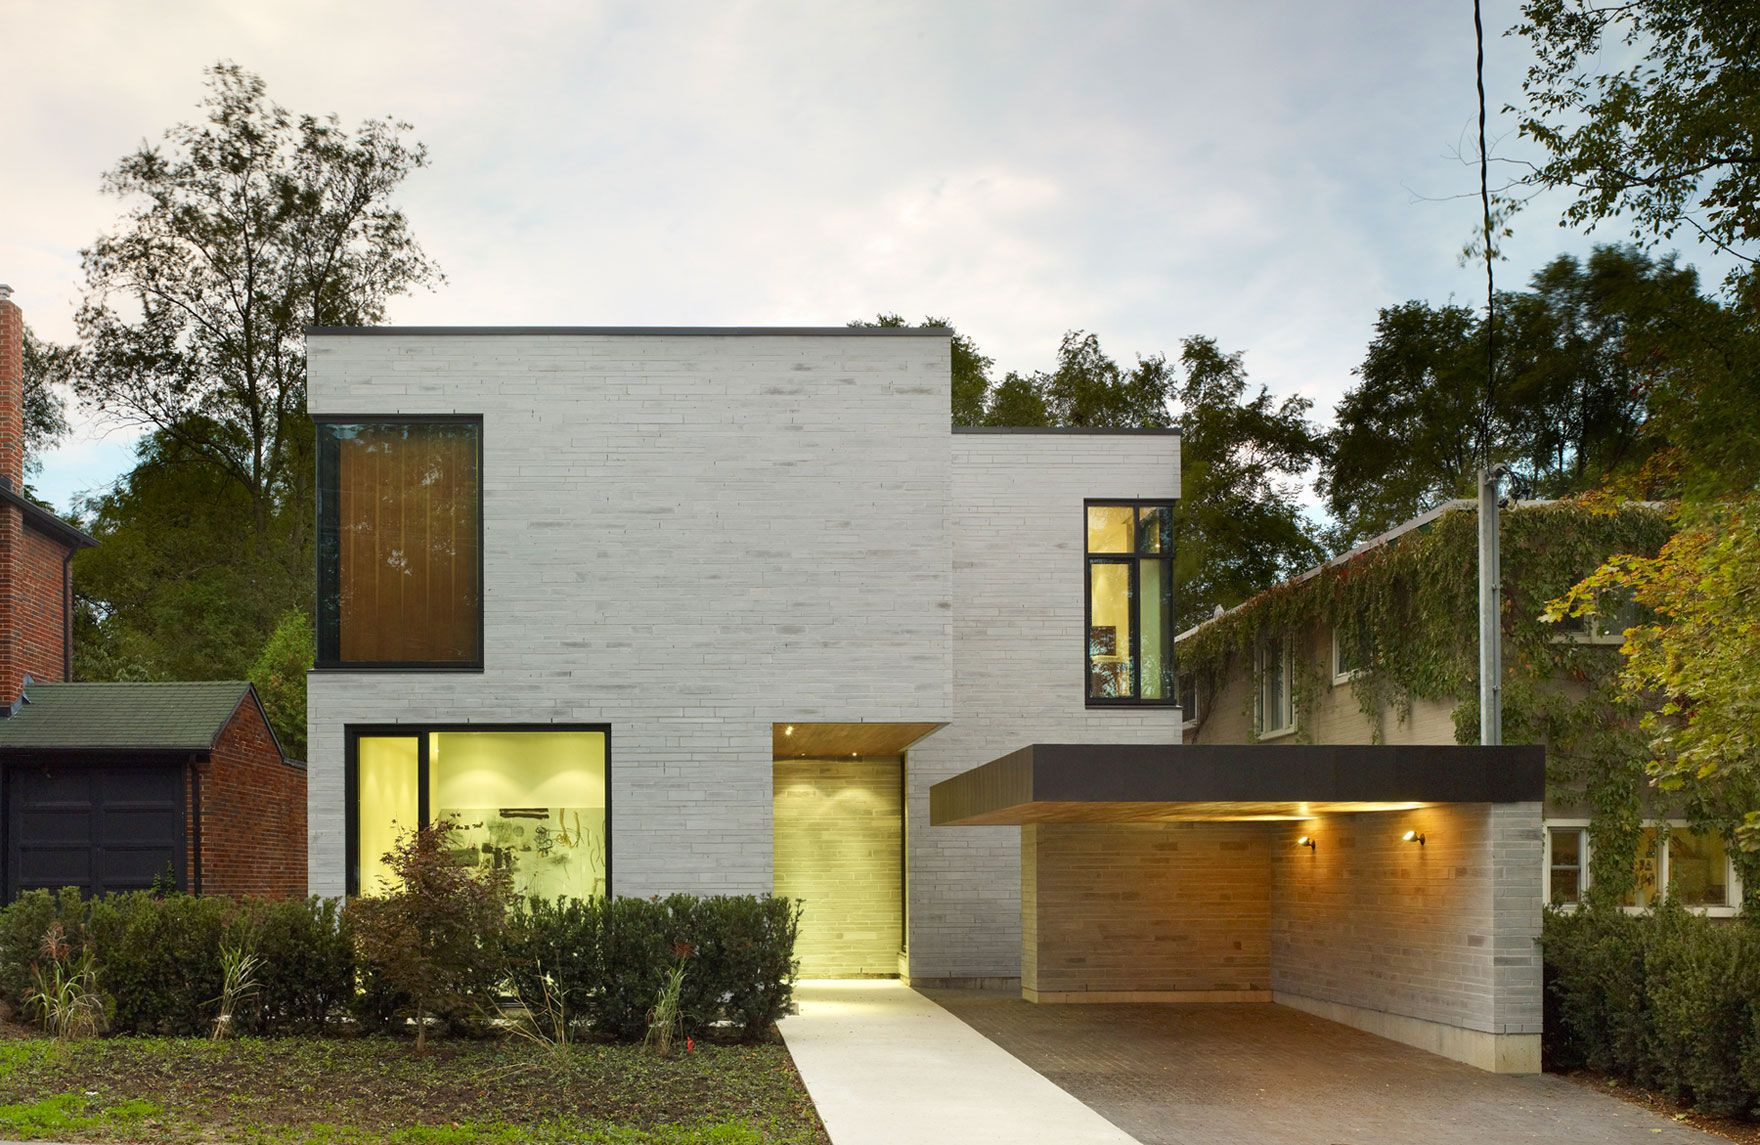 Prime 17 Best Images About Small Modern On Pinterest House Tours Largest Home Design Picture Inspirations Pitcheantrous